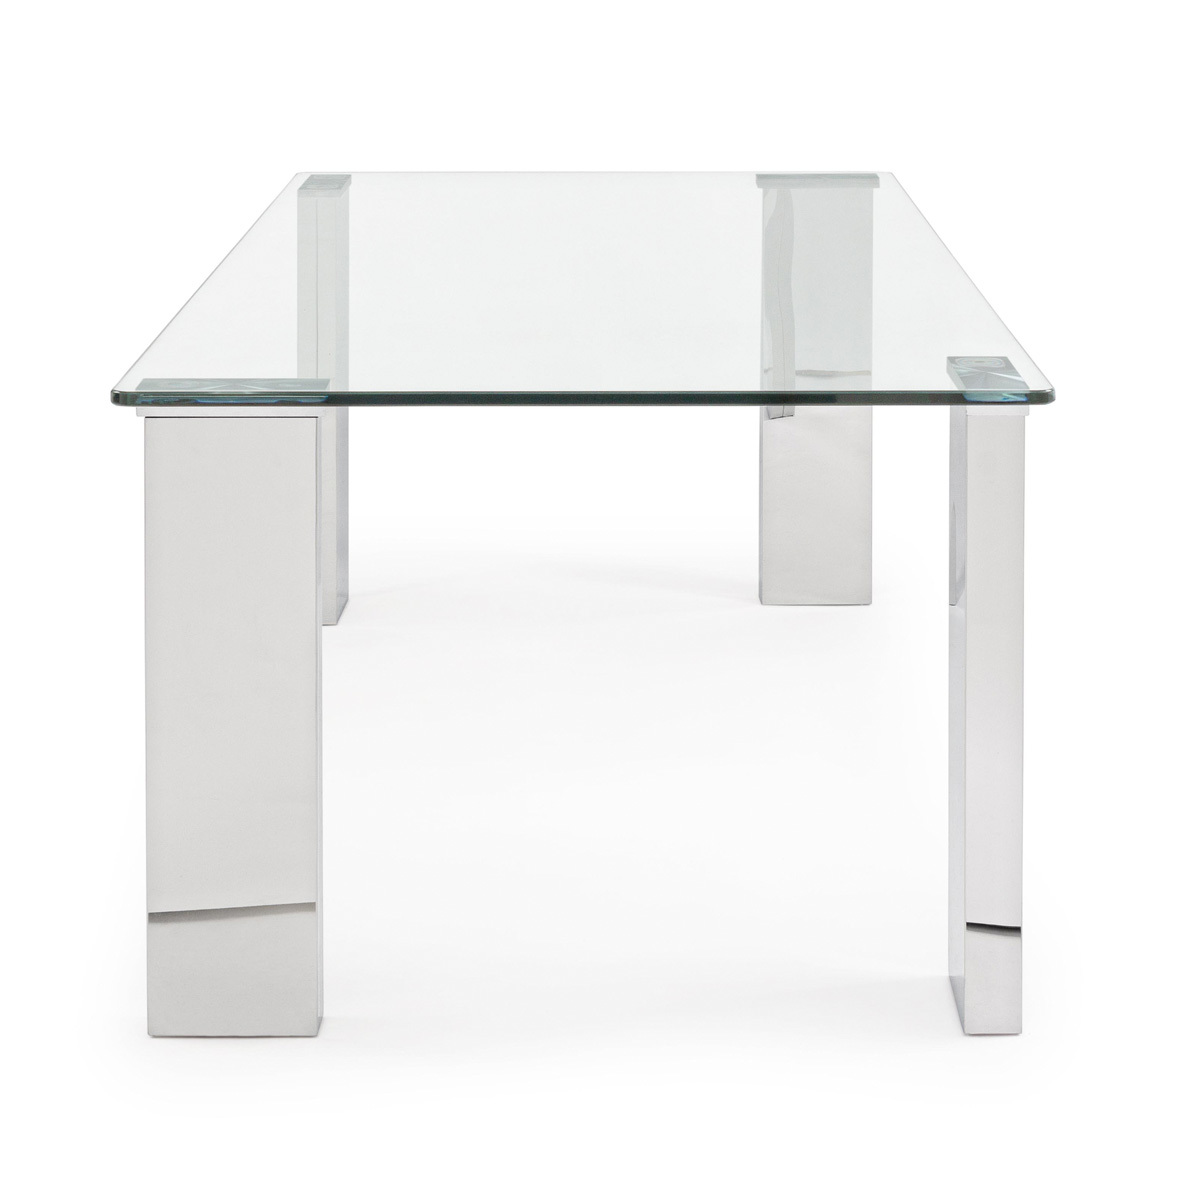 Photos 3: Bizzotto Rectangular table in glass l. 120 x 60 0731955